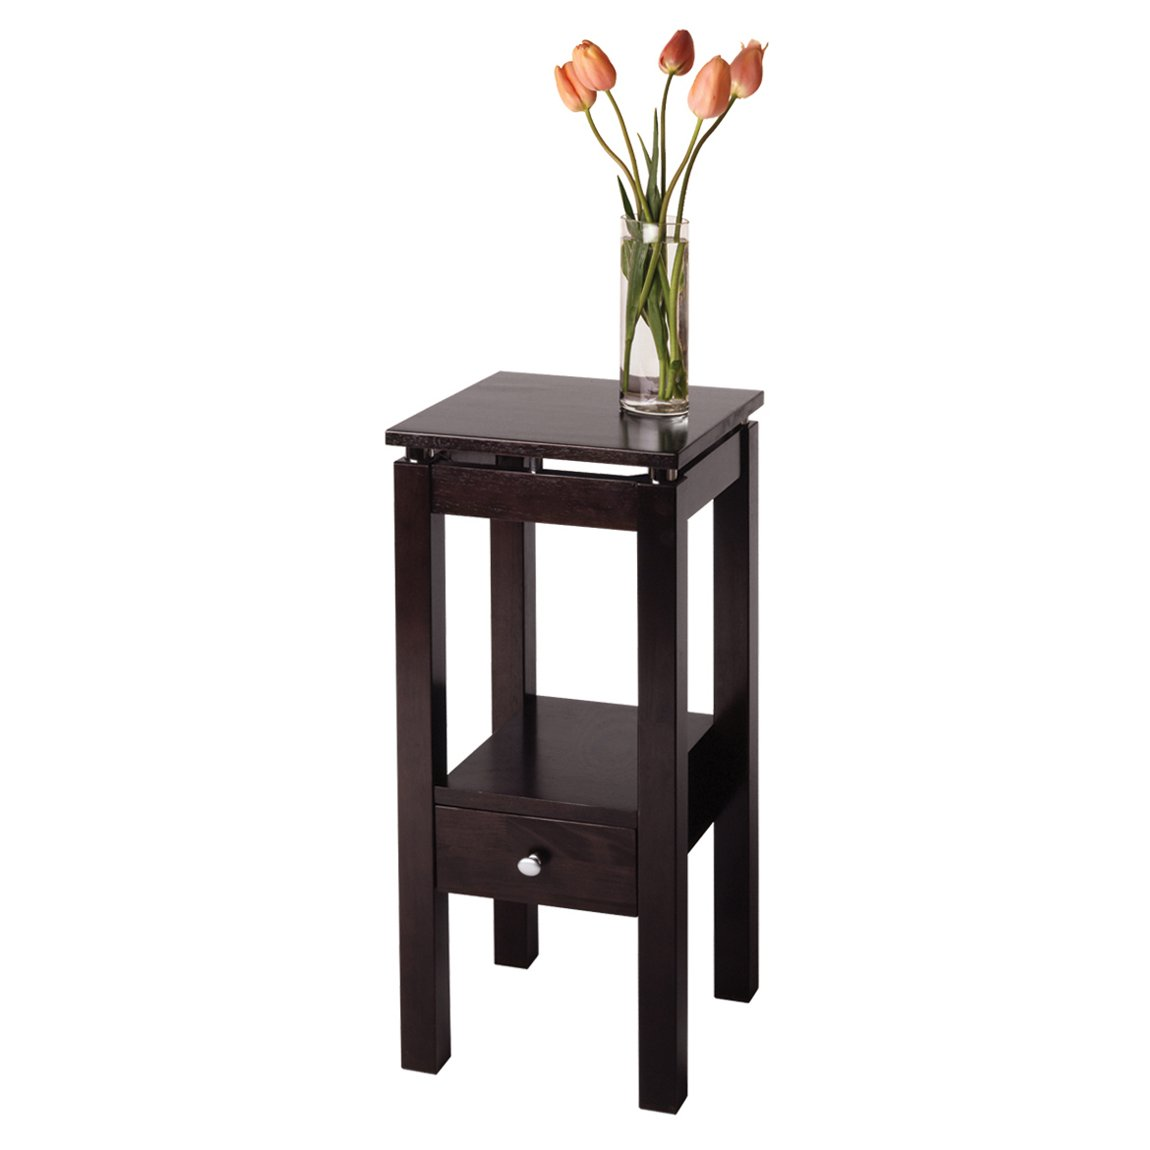 winsome wood linea phone stand entry table lowe accent telephone view larger grey corner gold side lamps long cabinet glass and metal coffee folding tray door threshold trim